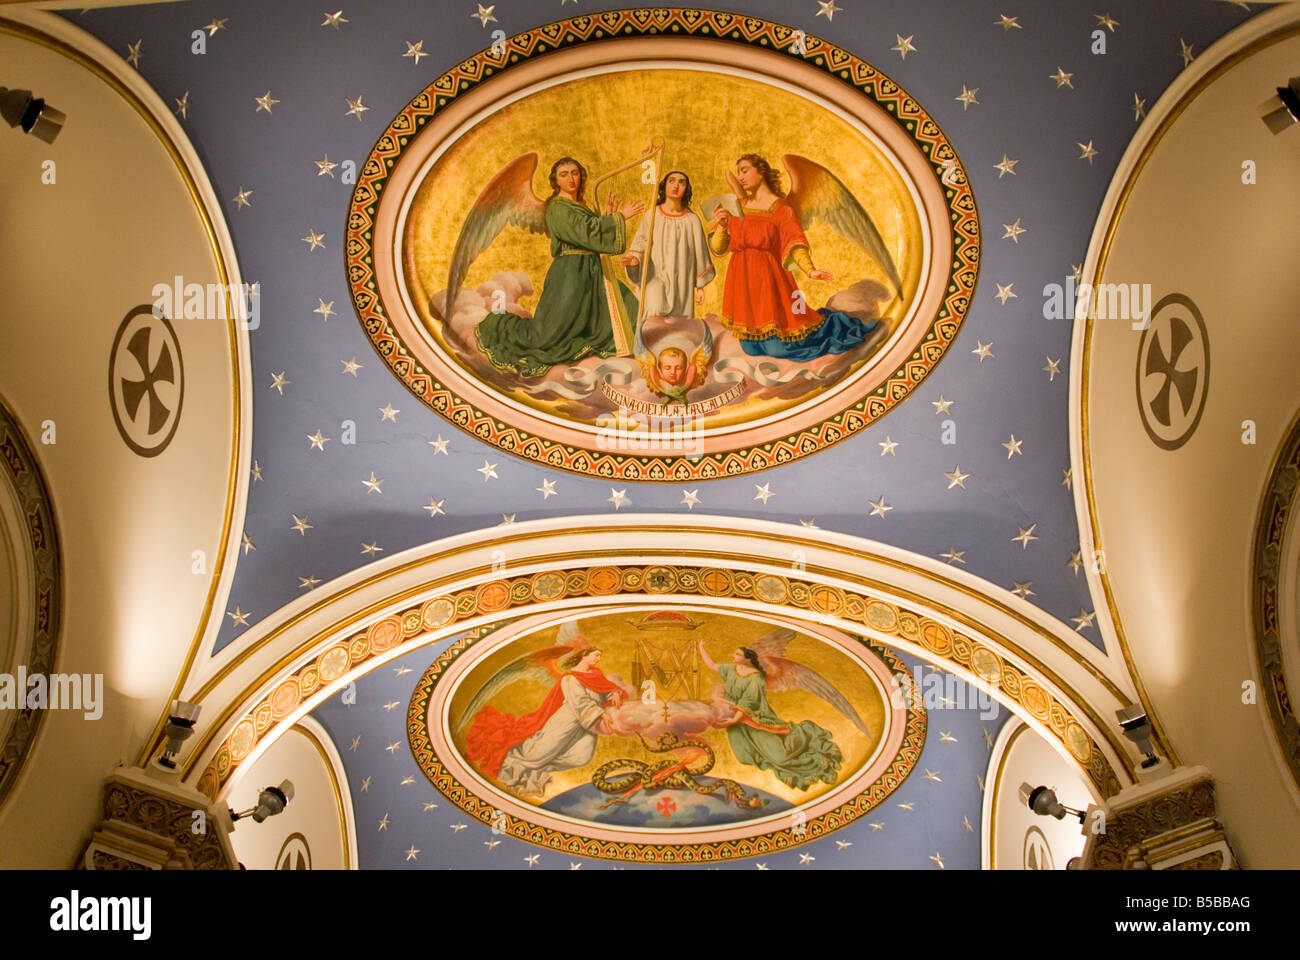 Painted ceiling of an alter Oratorio in the Palacio del Marques de Dos Aguas which houses the Ceramic museum. Valencia. - Stock Image